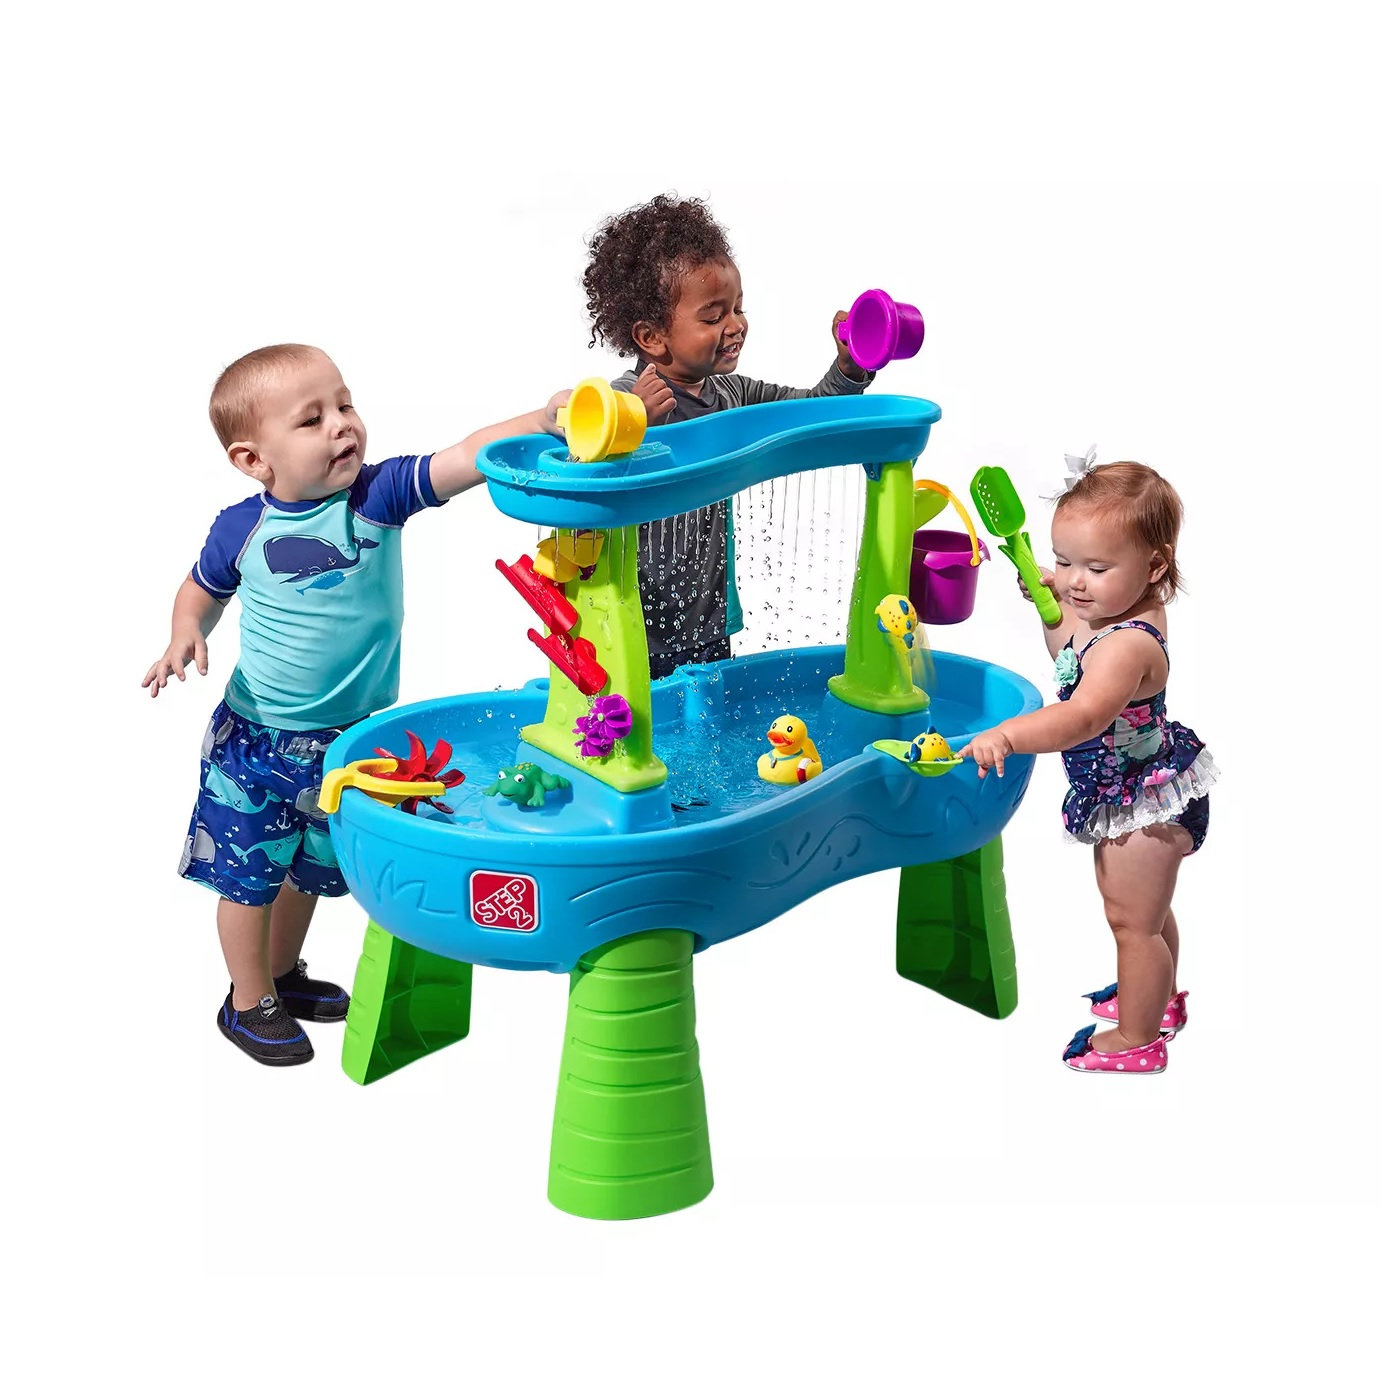 water tables & sand toys image